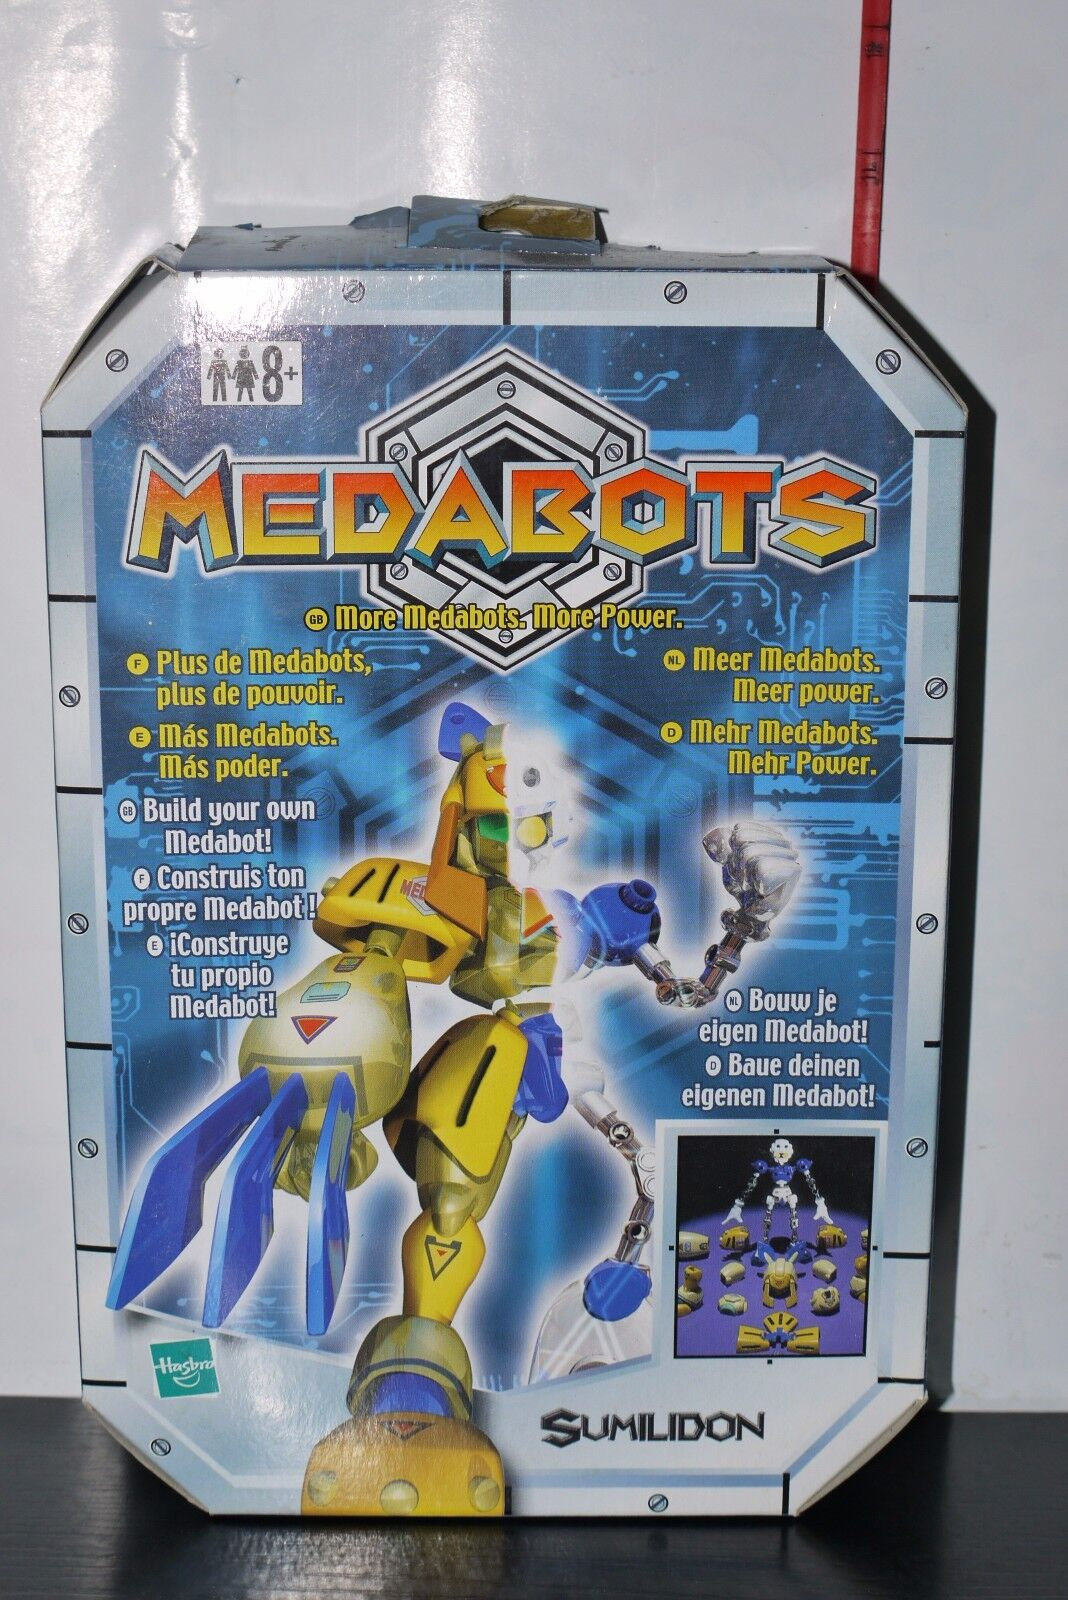 2002 HASBRO TAKARA MEDABOTS Build Your Own SUMILIDON FIGURE KIT BOXED